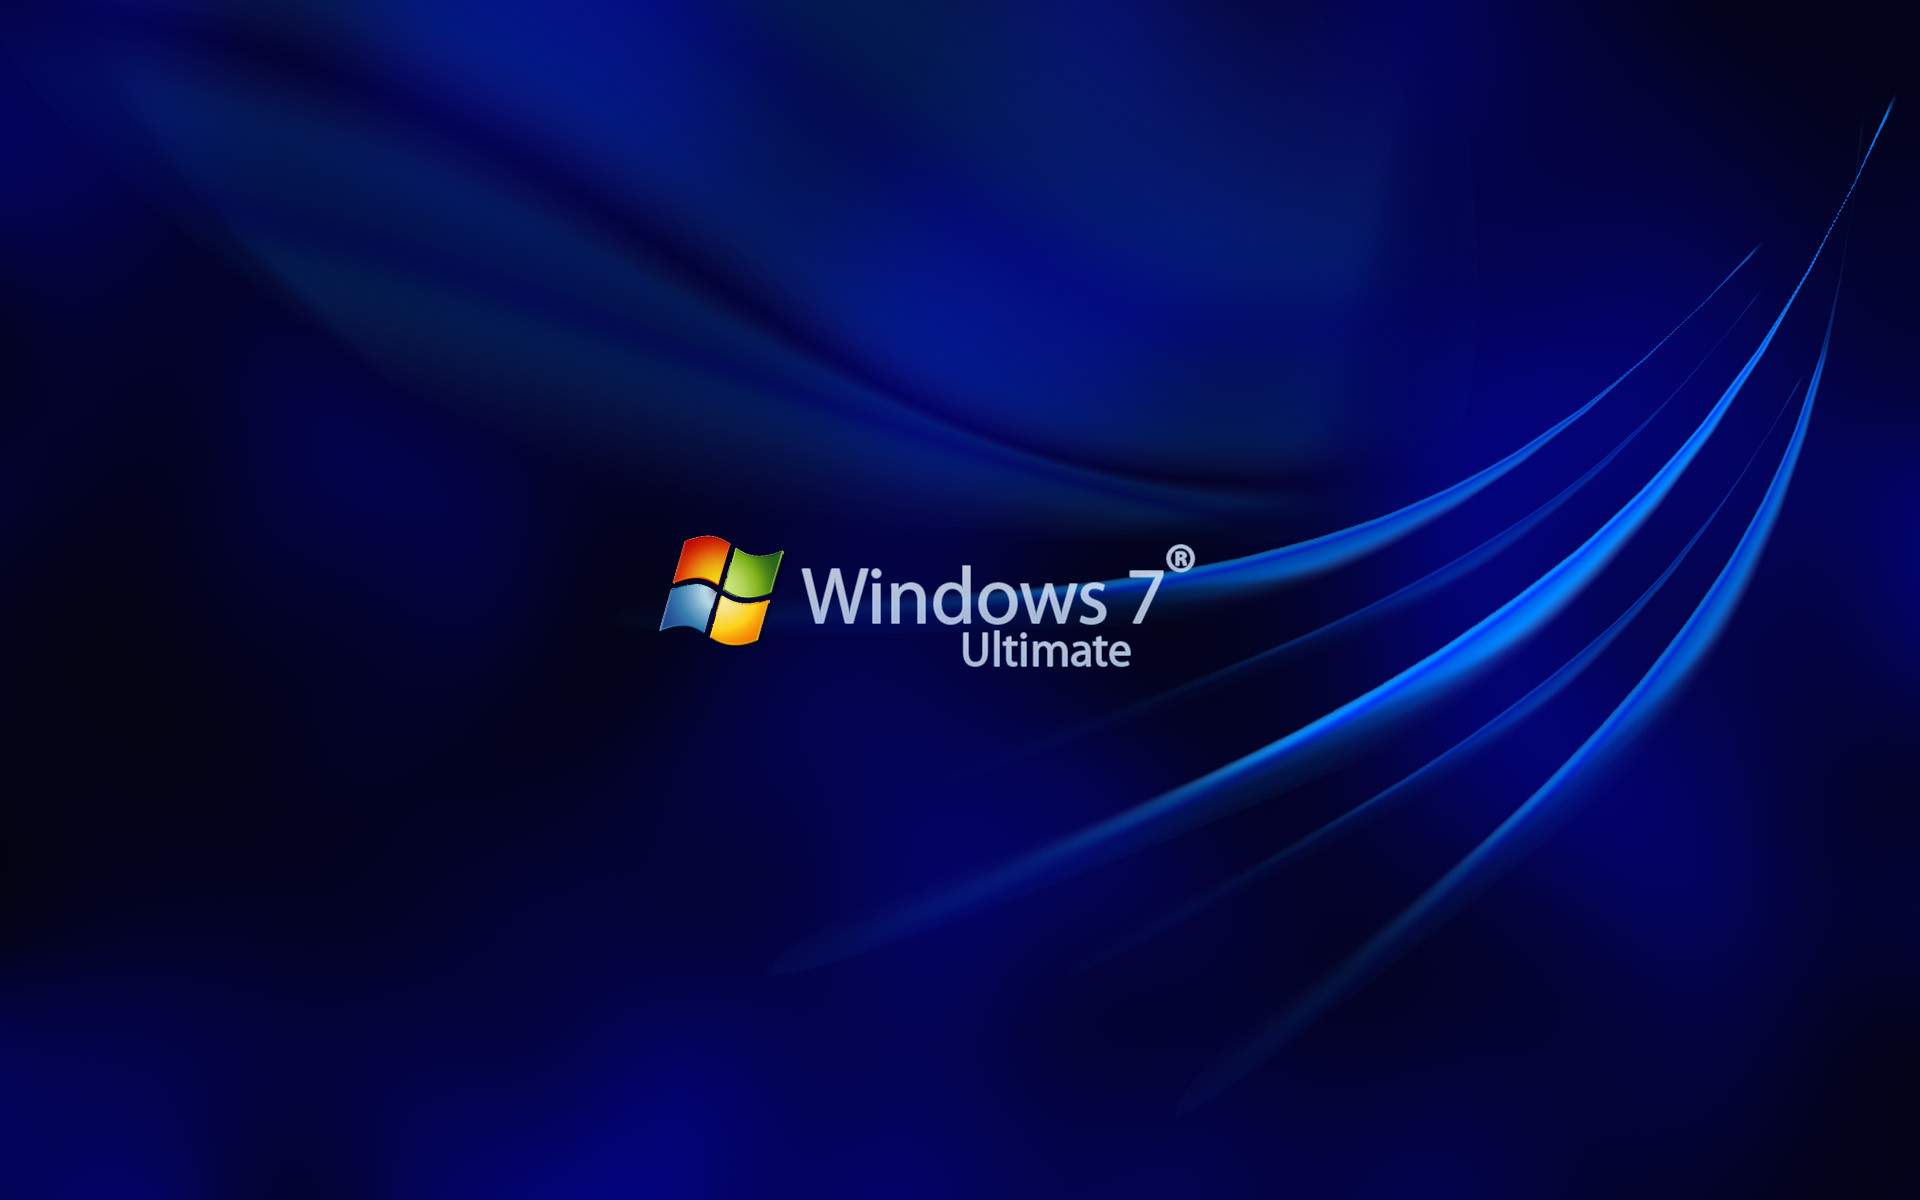 Windows 7 Ultimate Wallpaper HD 50 images 1920x1200